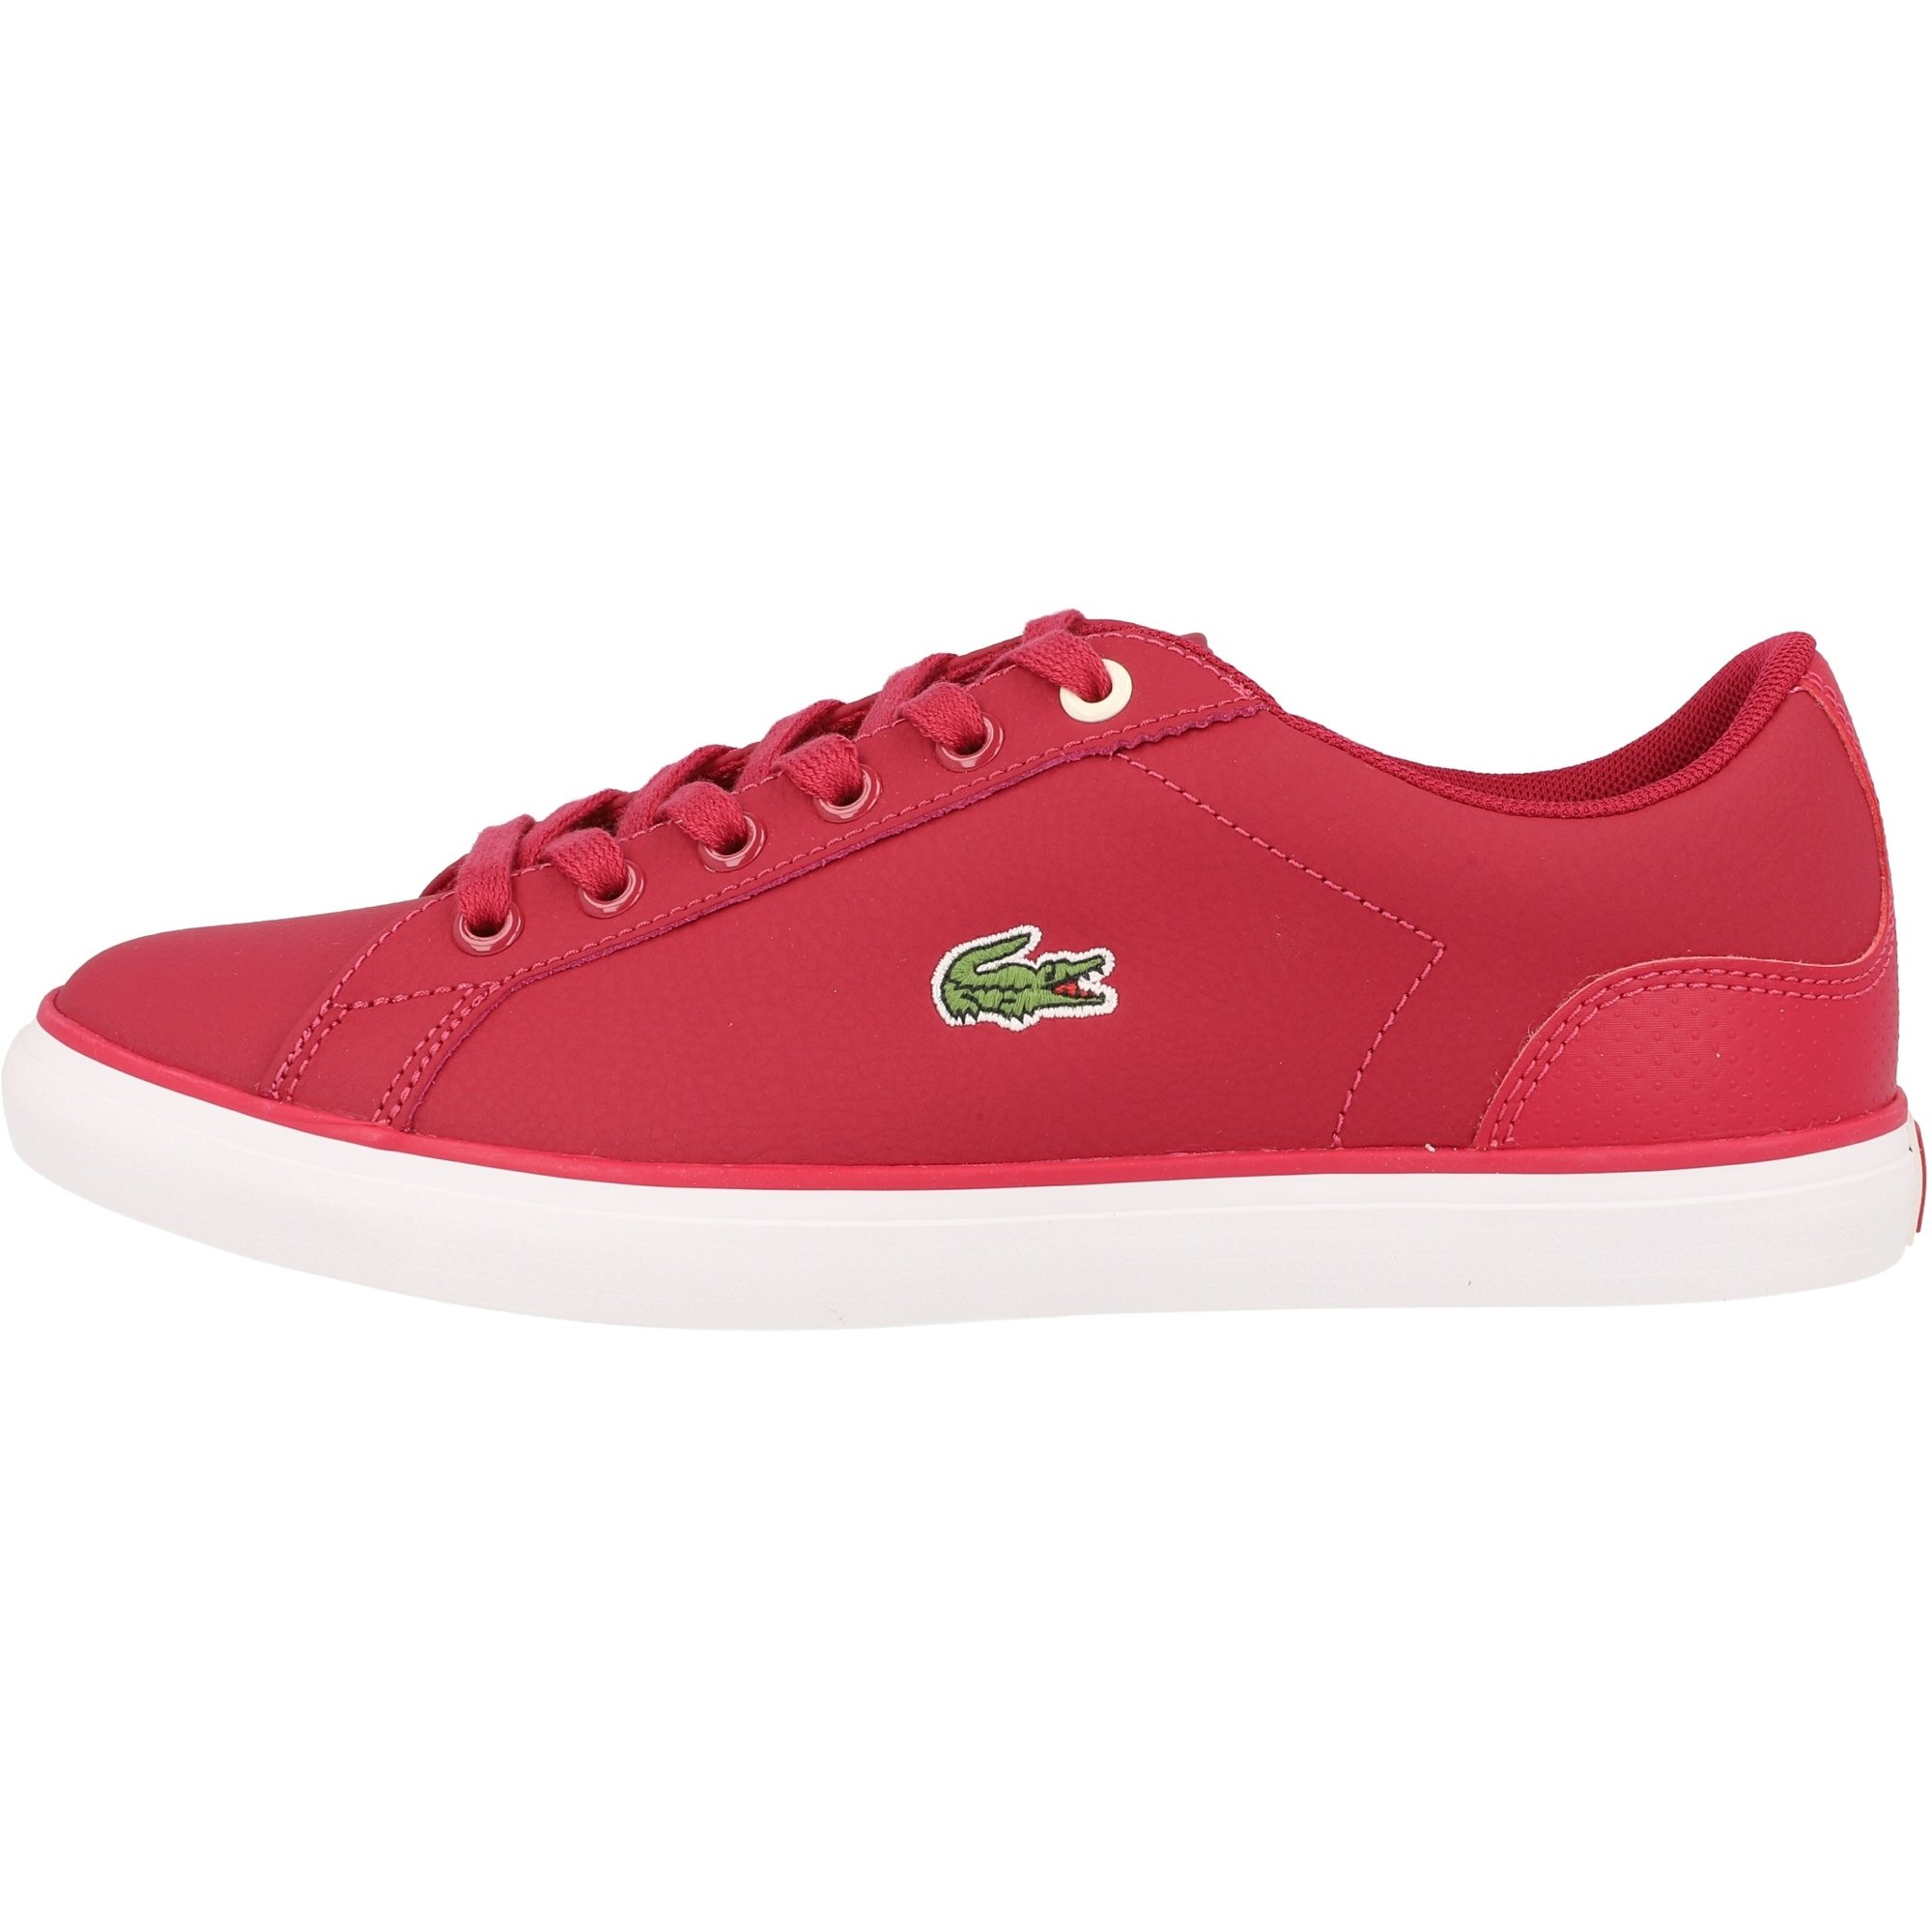 Synth/étique Junior Formateurs Chaussures Dark Pink//Off White Lacoste Lerond 319 1 Rose//Blanc